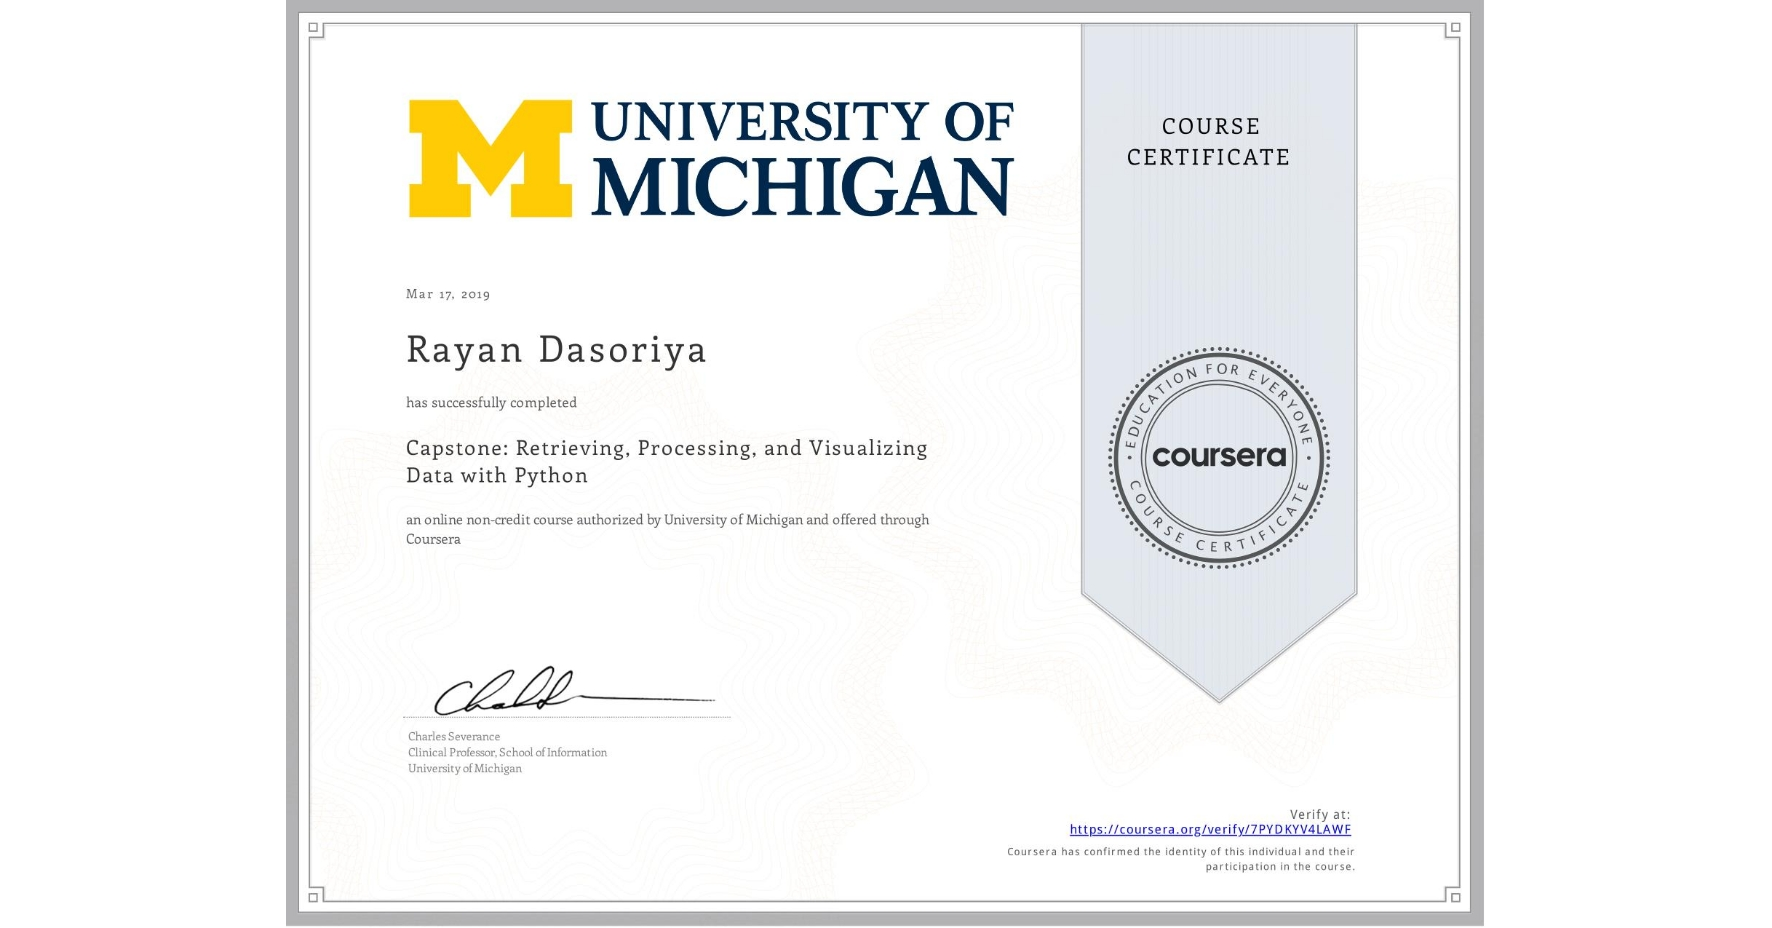 View certificate for Rayan Dasoriya, Capstone: Retrieving, Processing, and Visualizing Data with Python, an online non-credit course authorized by University of Michigan and offered through Coursera